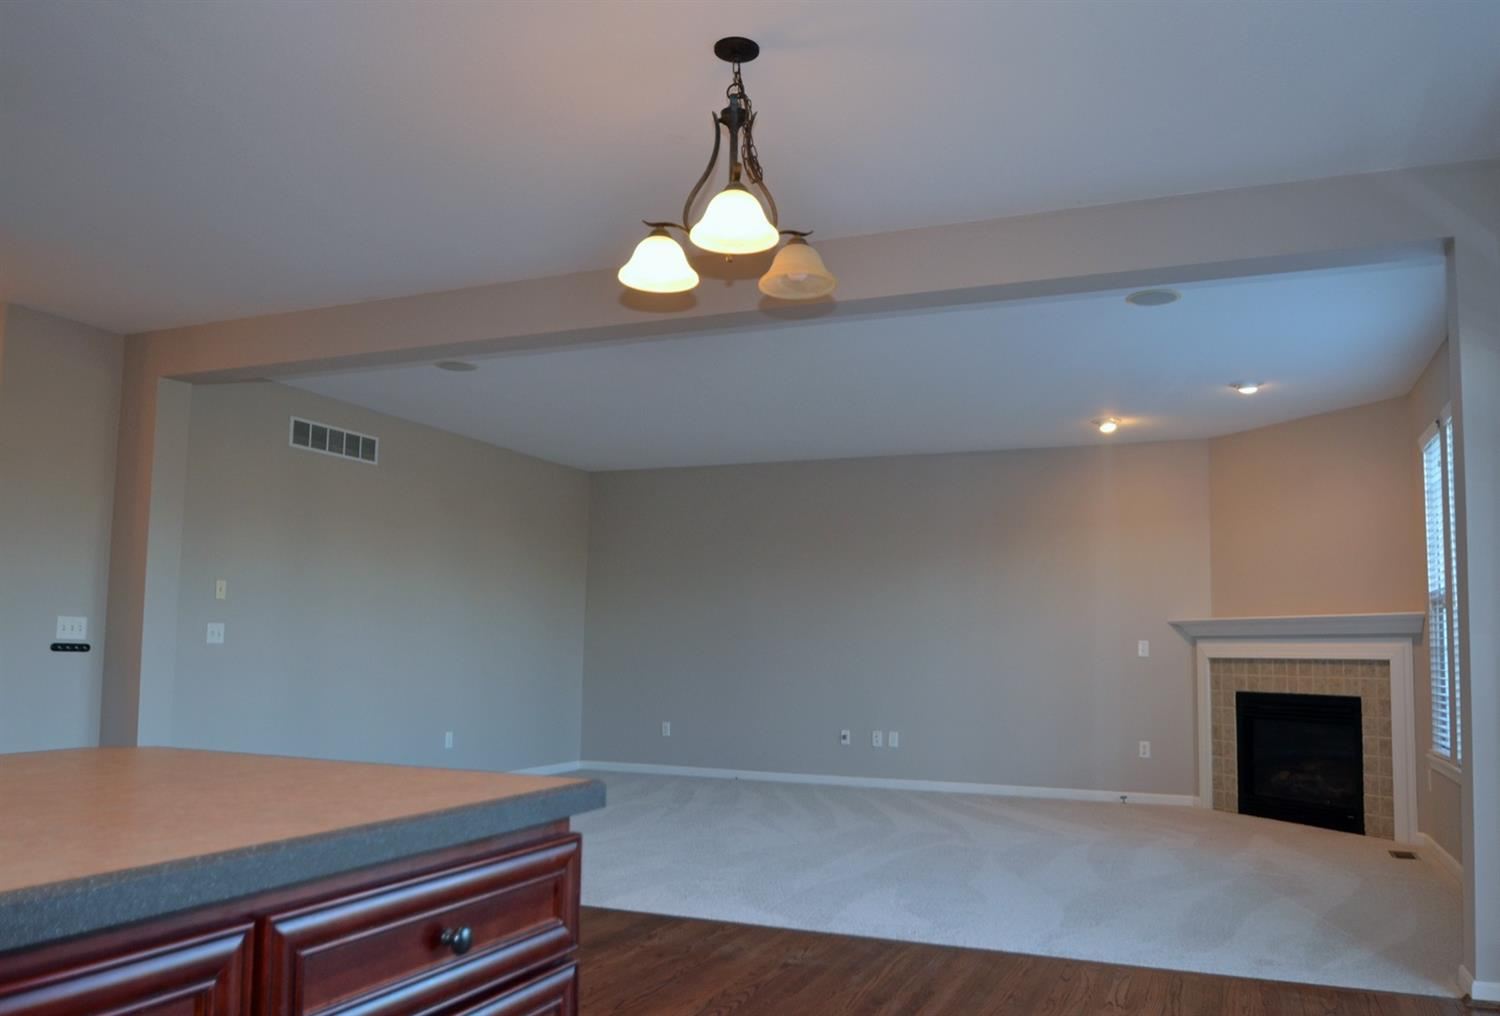 The spacious family room is completely open to the kitchen, eat-in area and walkout to the patio.